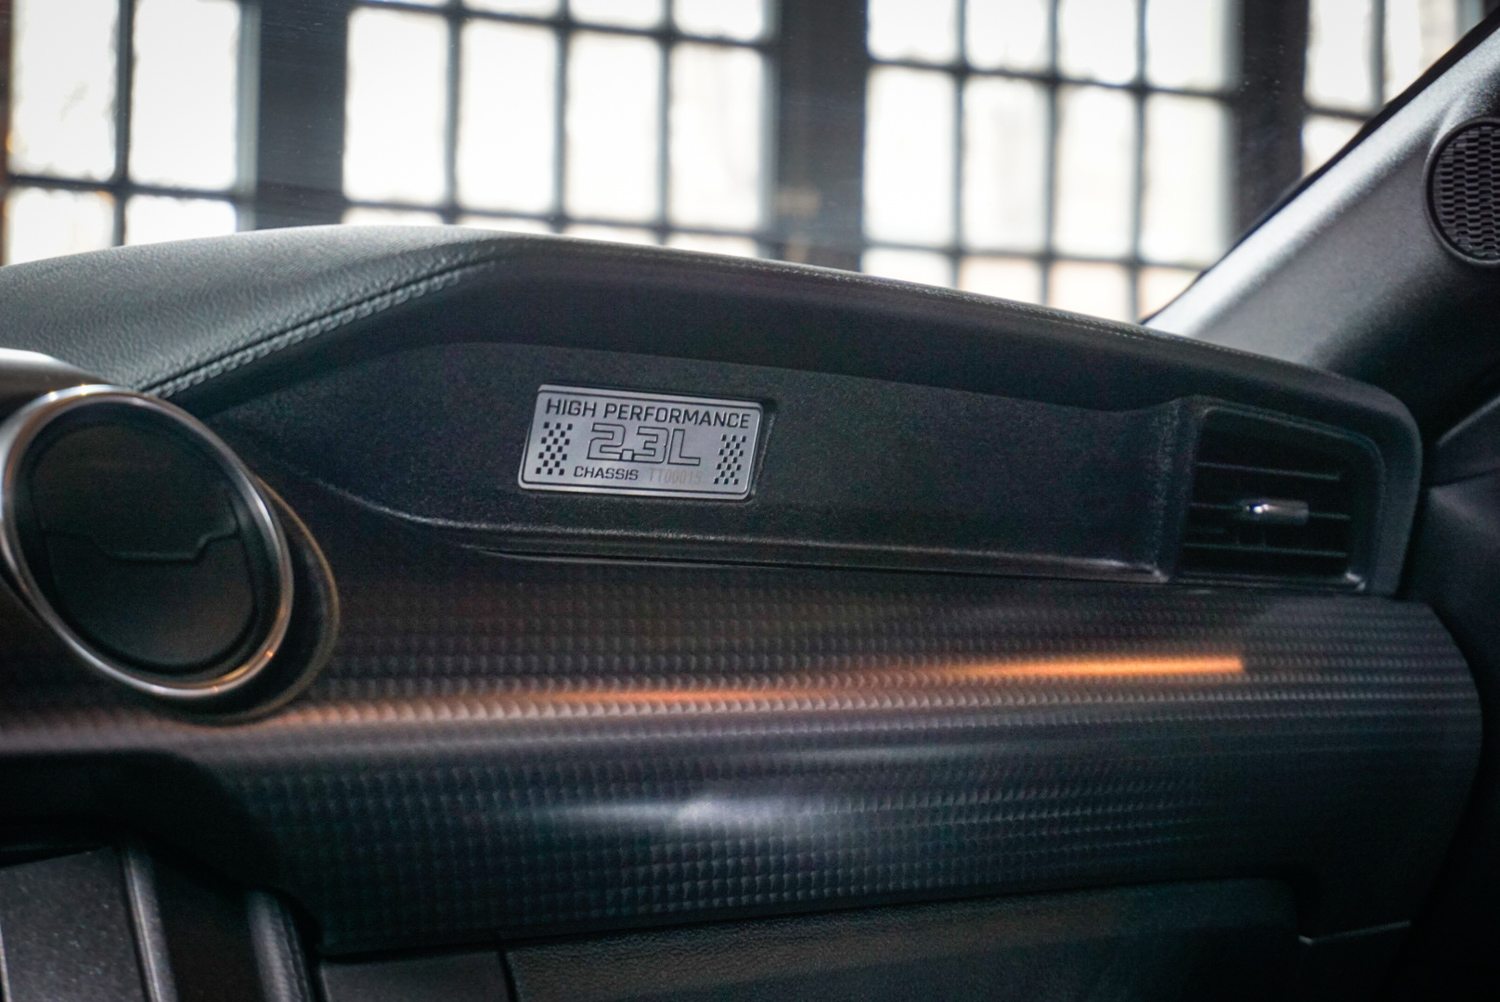 2020 Ford Mustang Ecoboost High Performance Package interior badge